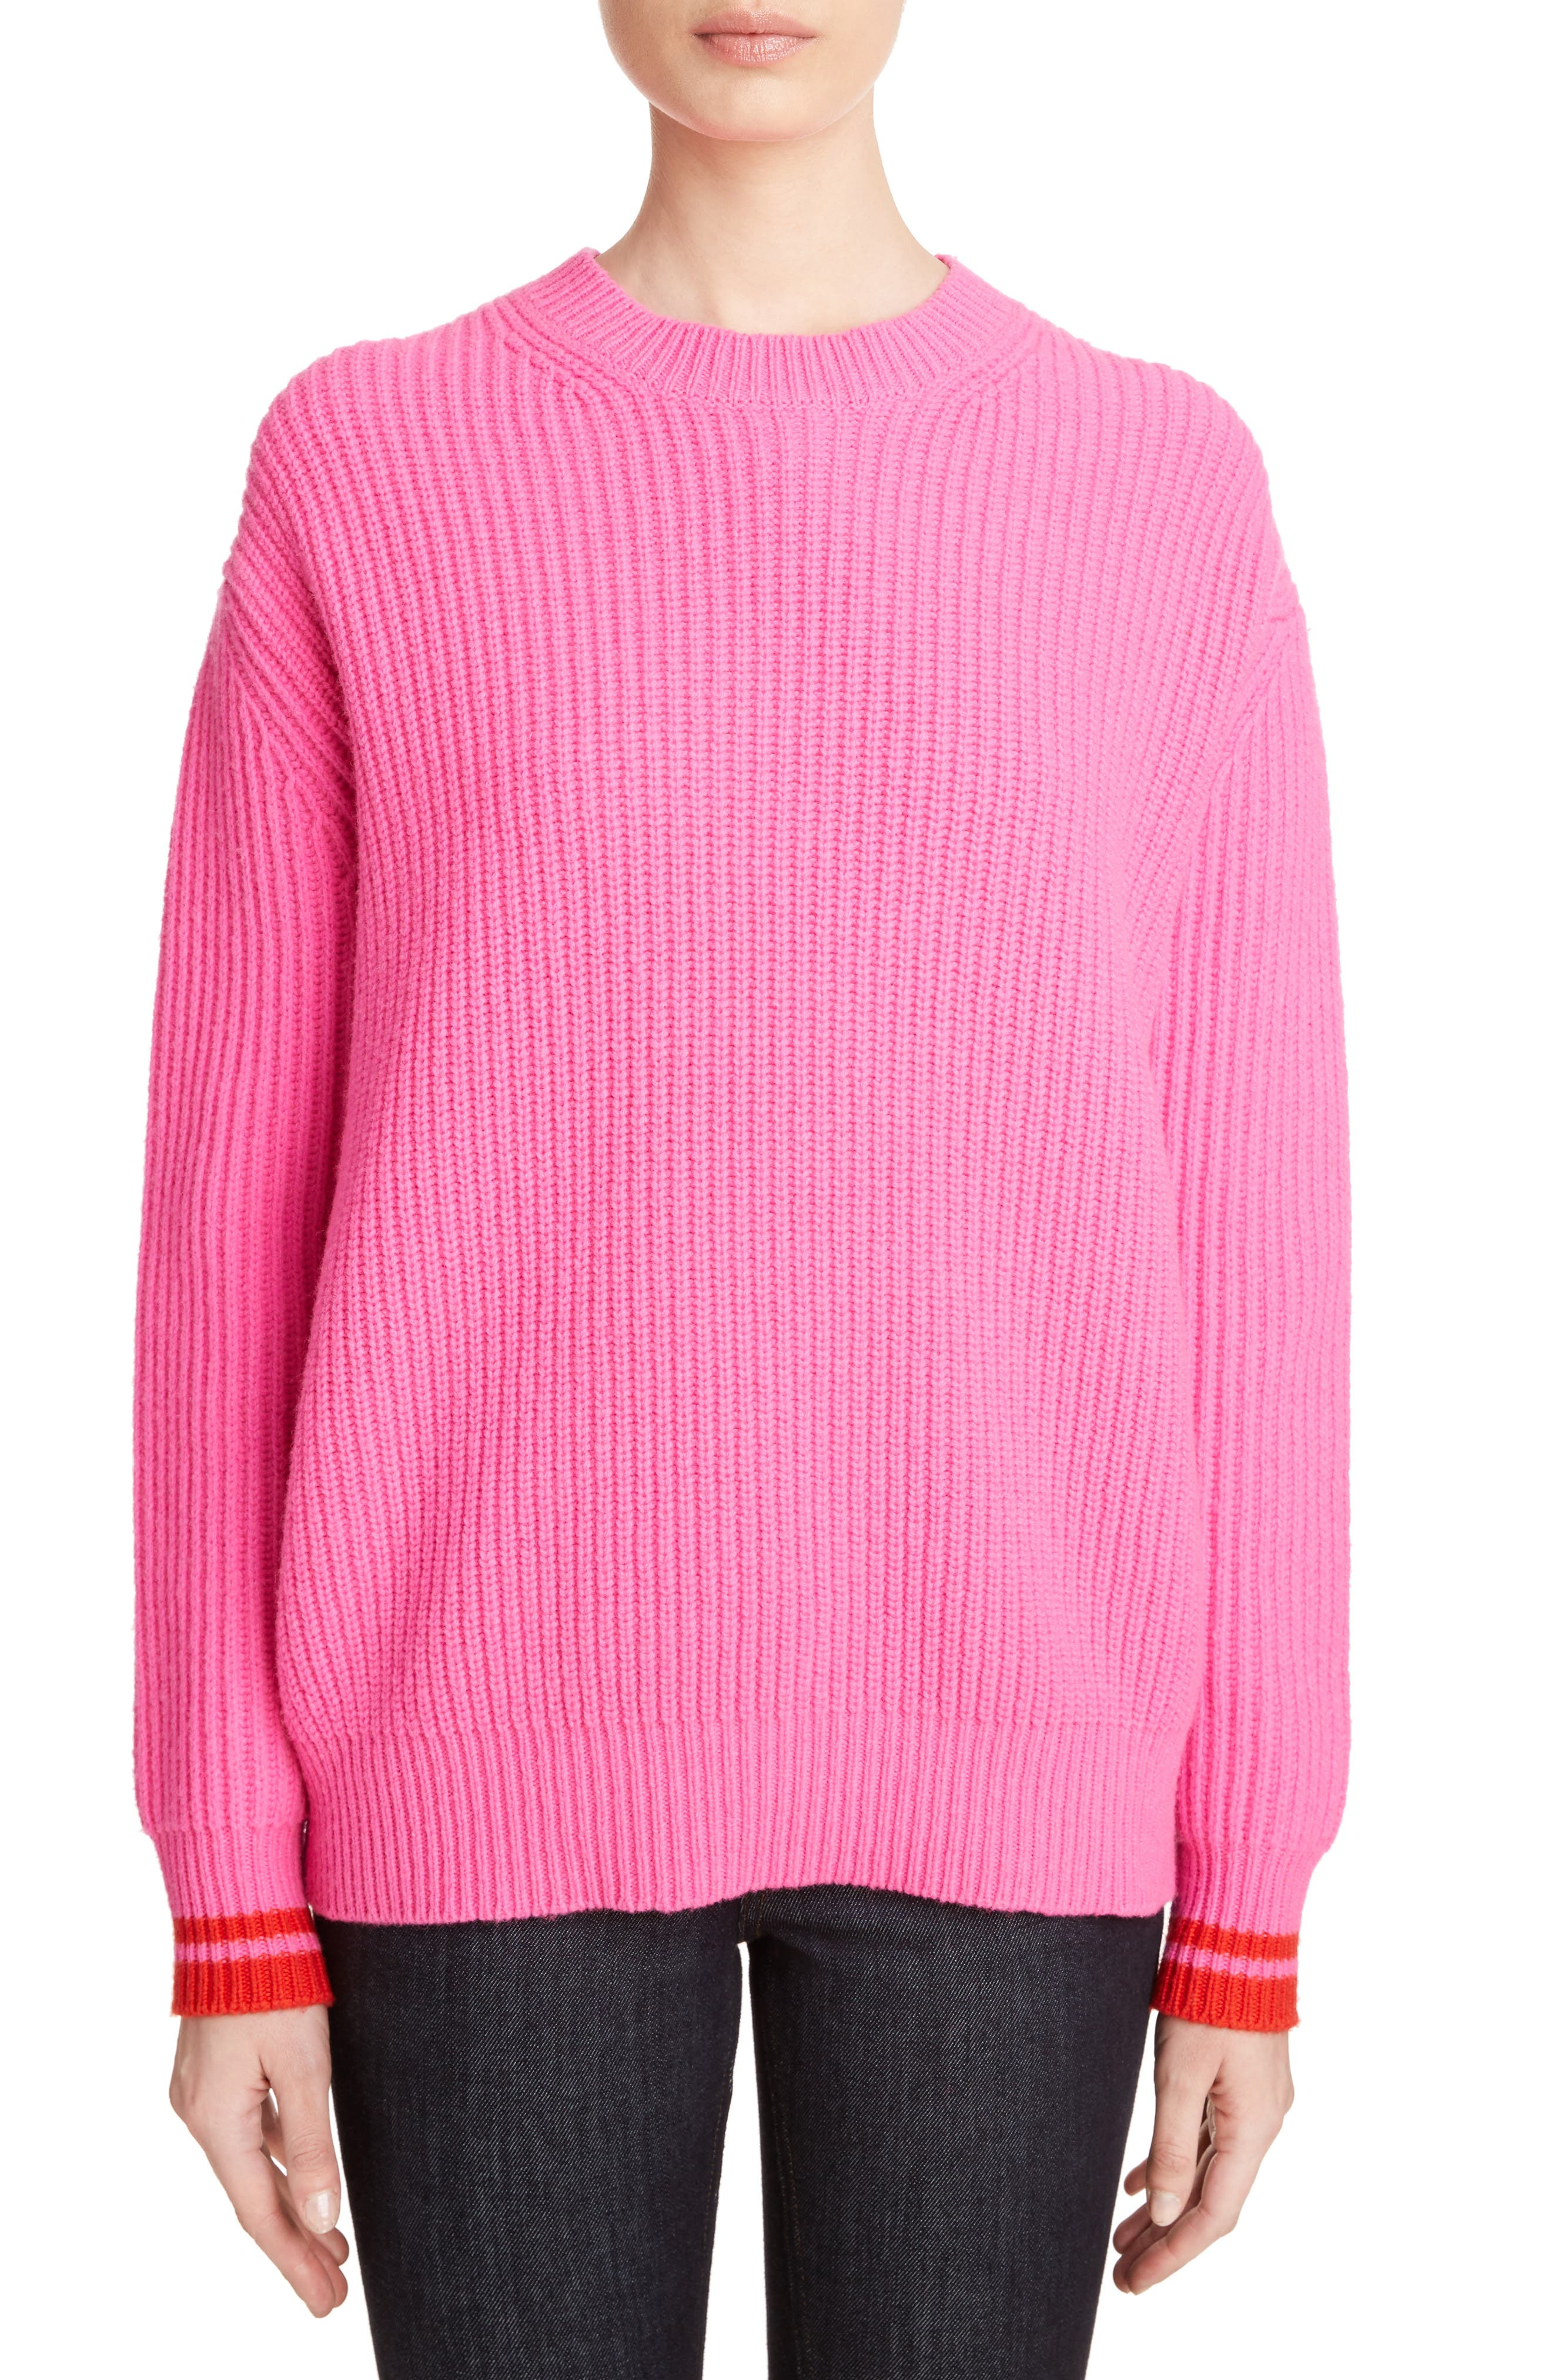 Lambswool Boyfriend Sweater,                         Main,                         color, Neon Pink/ Postbox Red